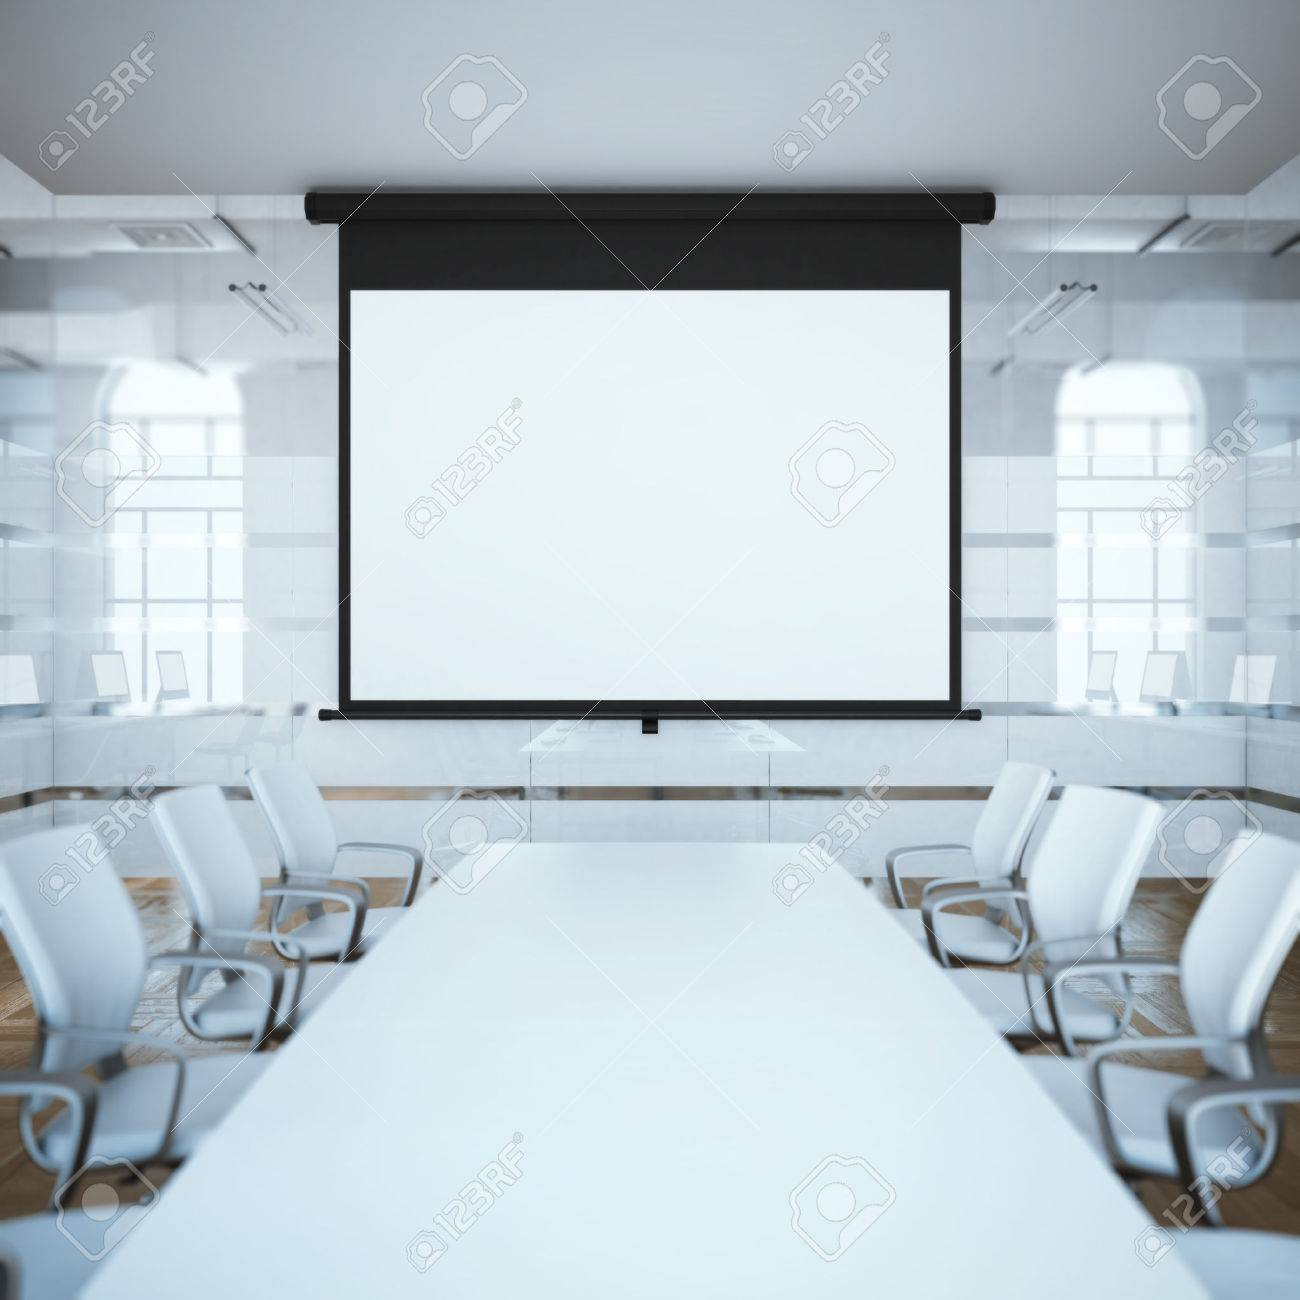 projection if how as page in choose theater you projector does enjoy just won home two that stewartfilm trends to t need have digital special a screen regular only room not one